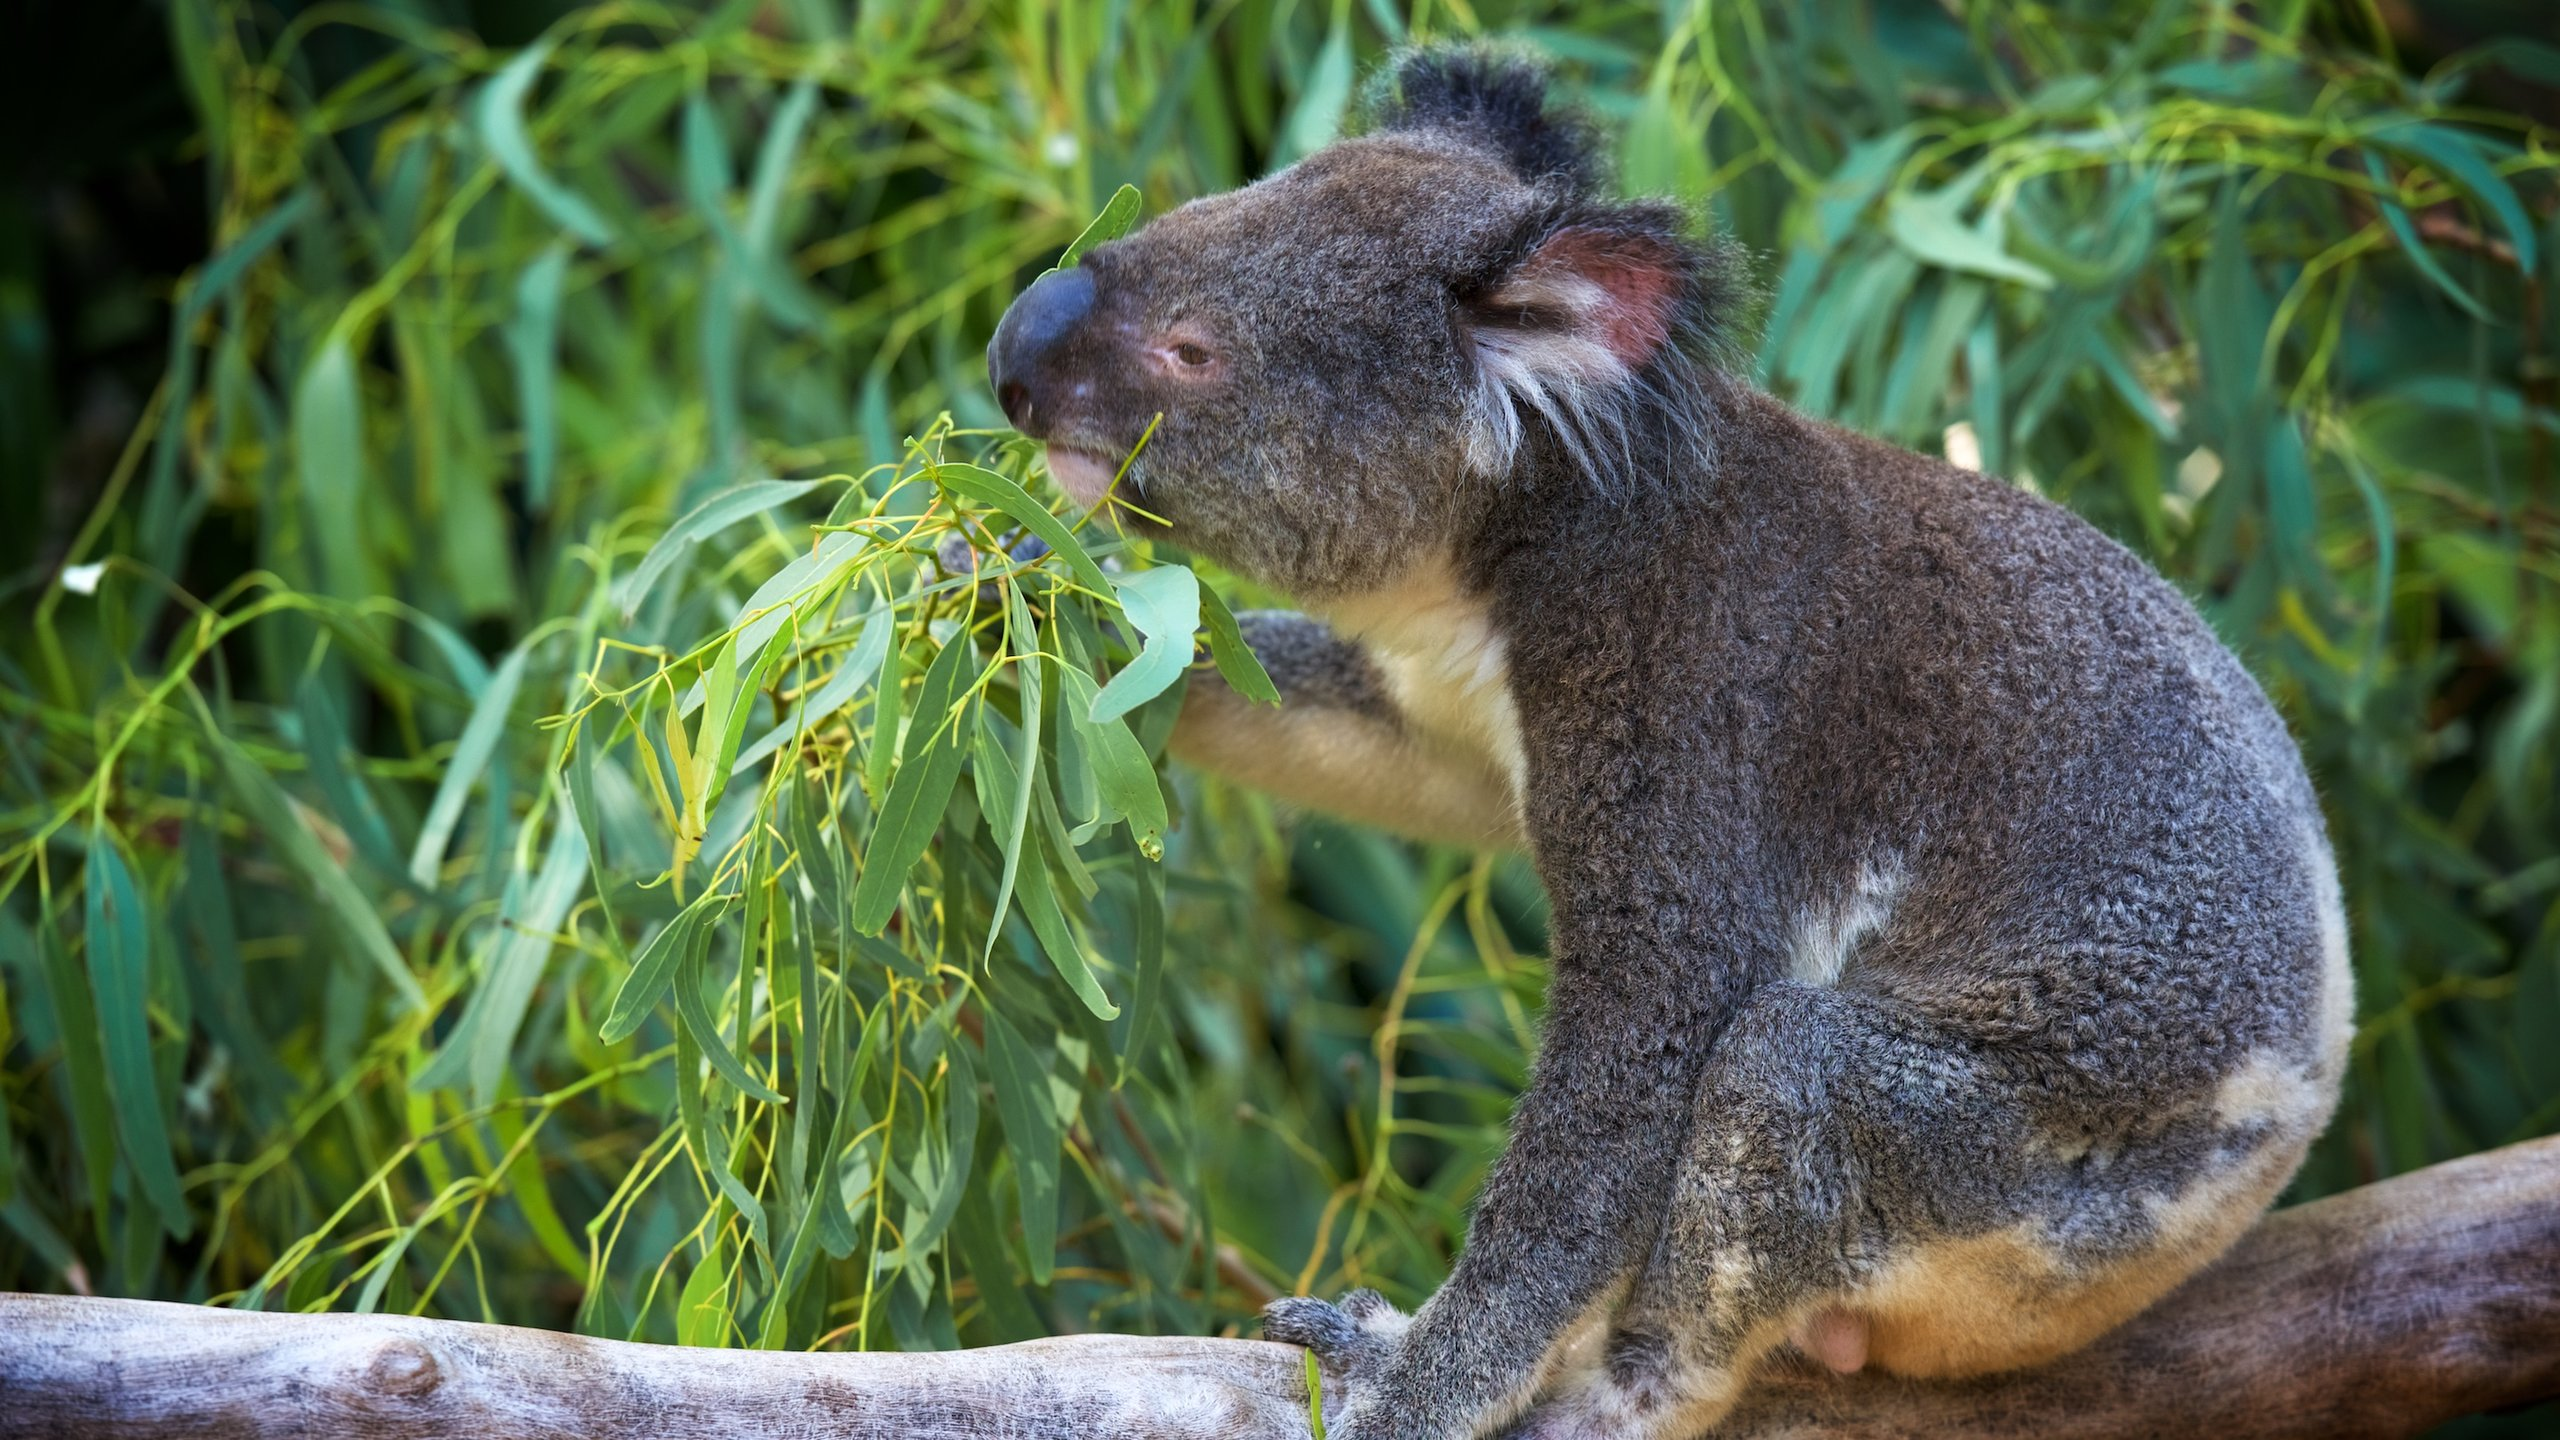 Rise early and have breakfast with the koalas in this compact Australian wildlife park in the stunning Whitsunday Island region of Queensland.